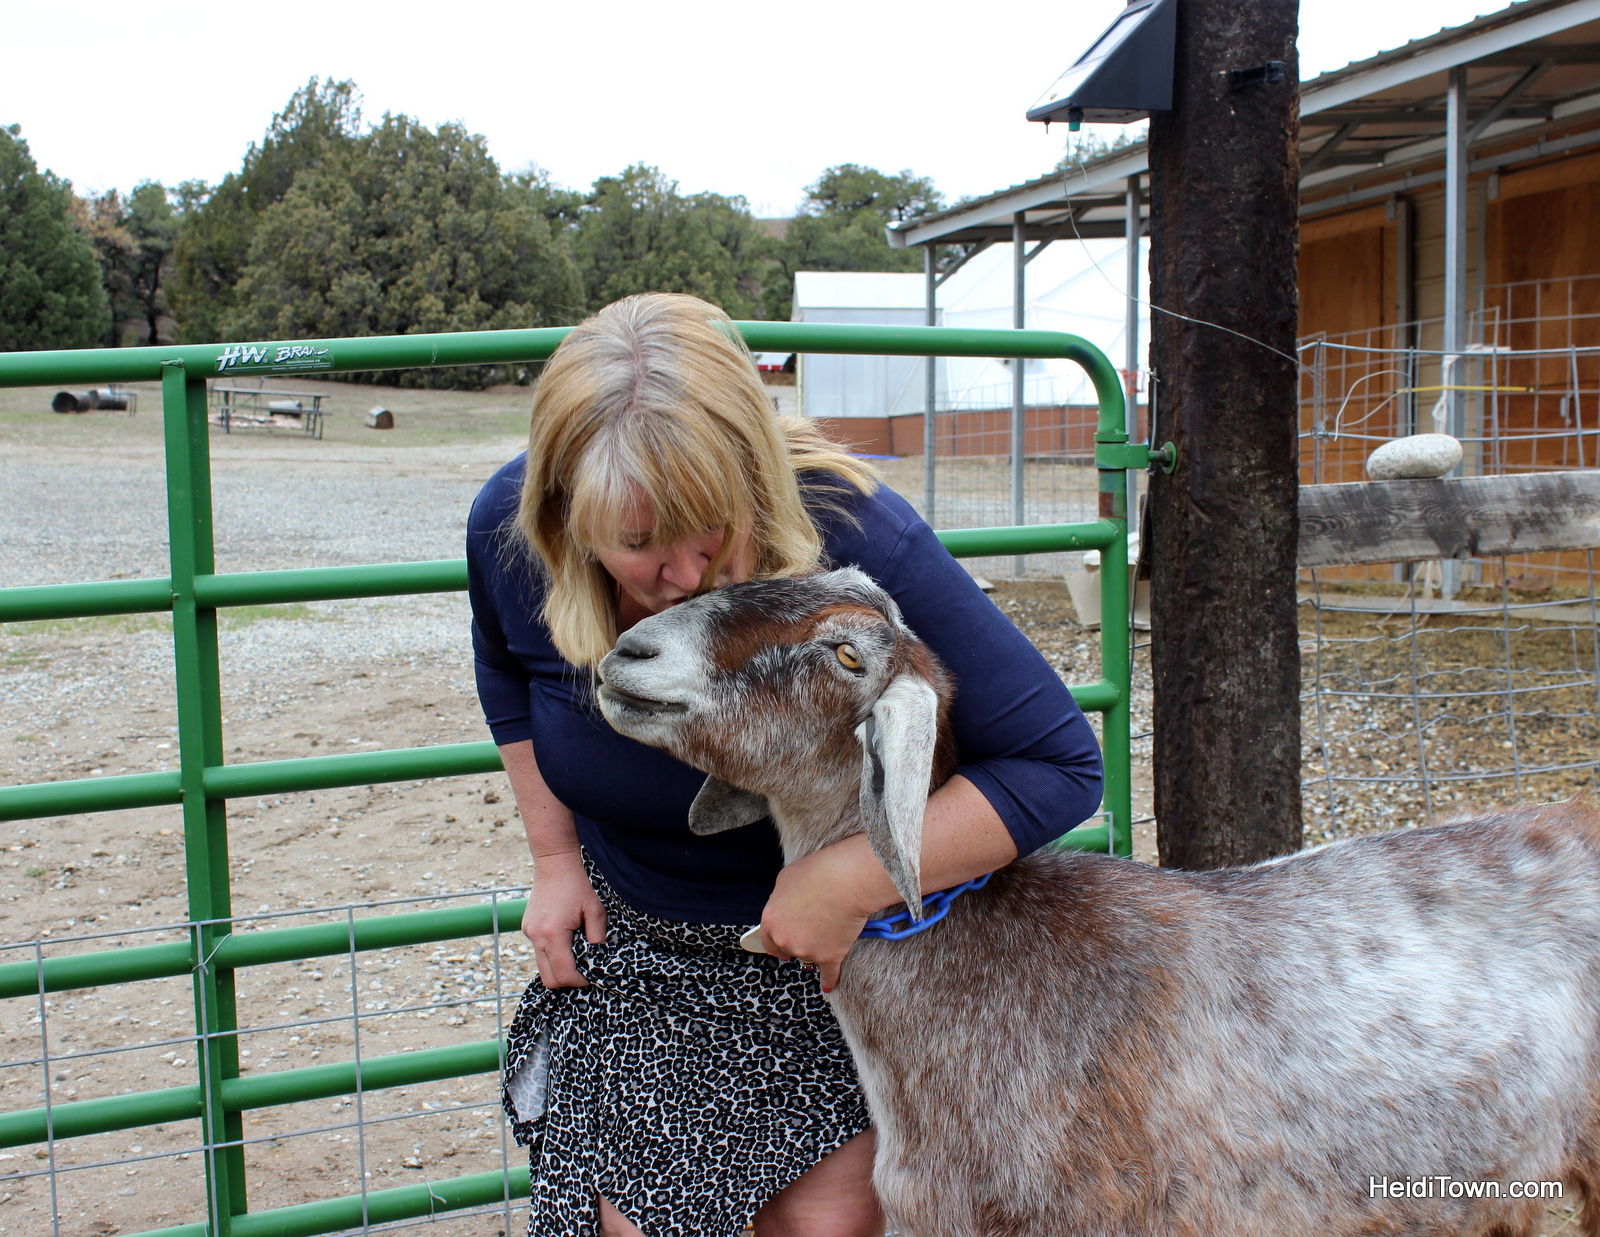 Gina and her goat Squirt at the Mountain Goat Lodge. He may be her favorite. HeidiTown.com